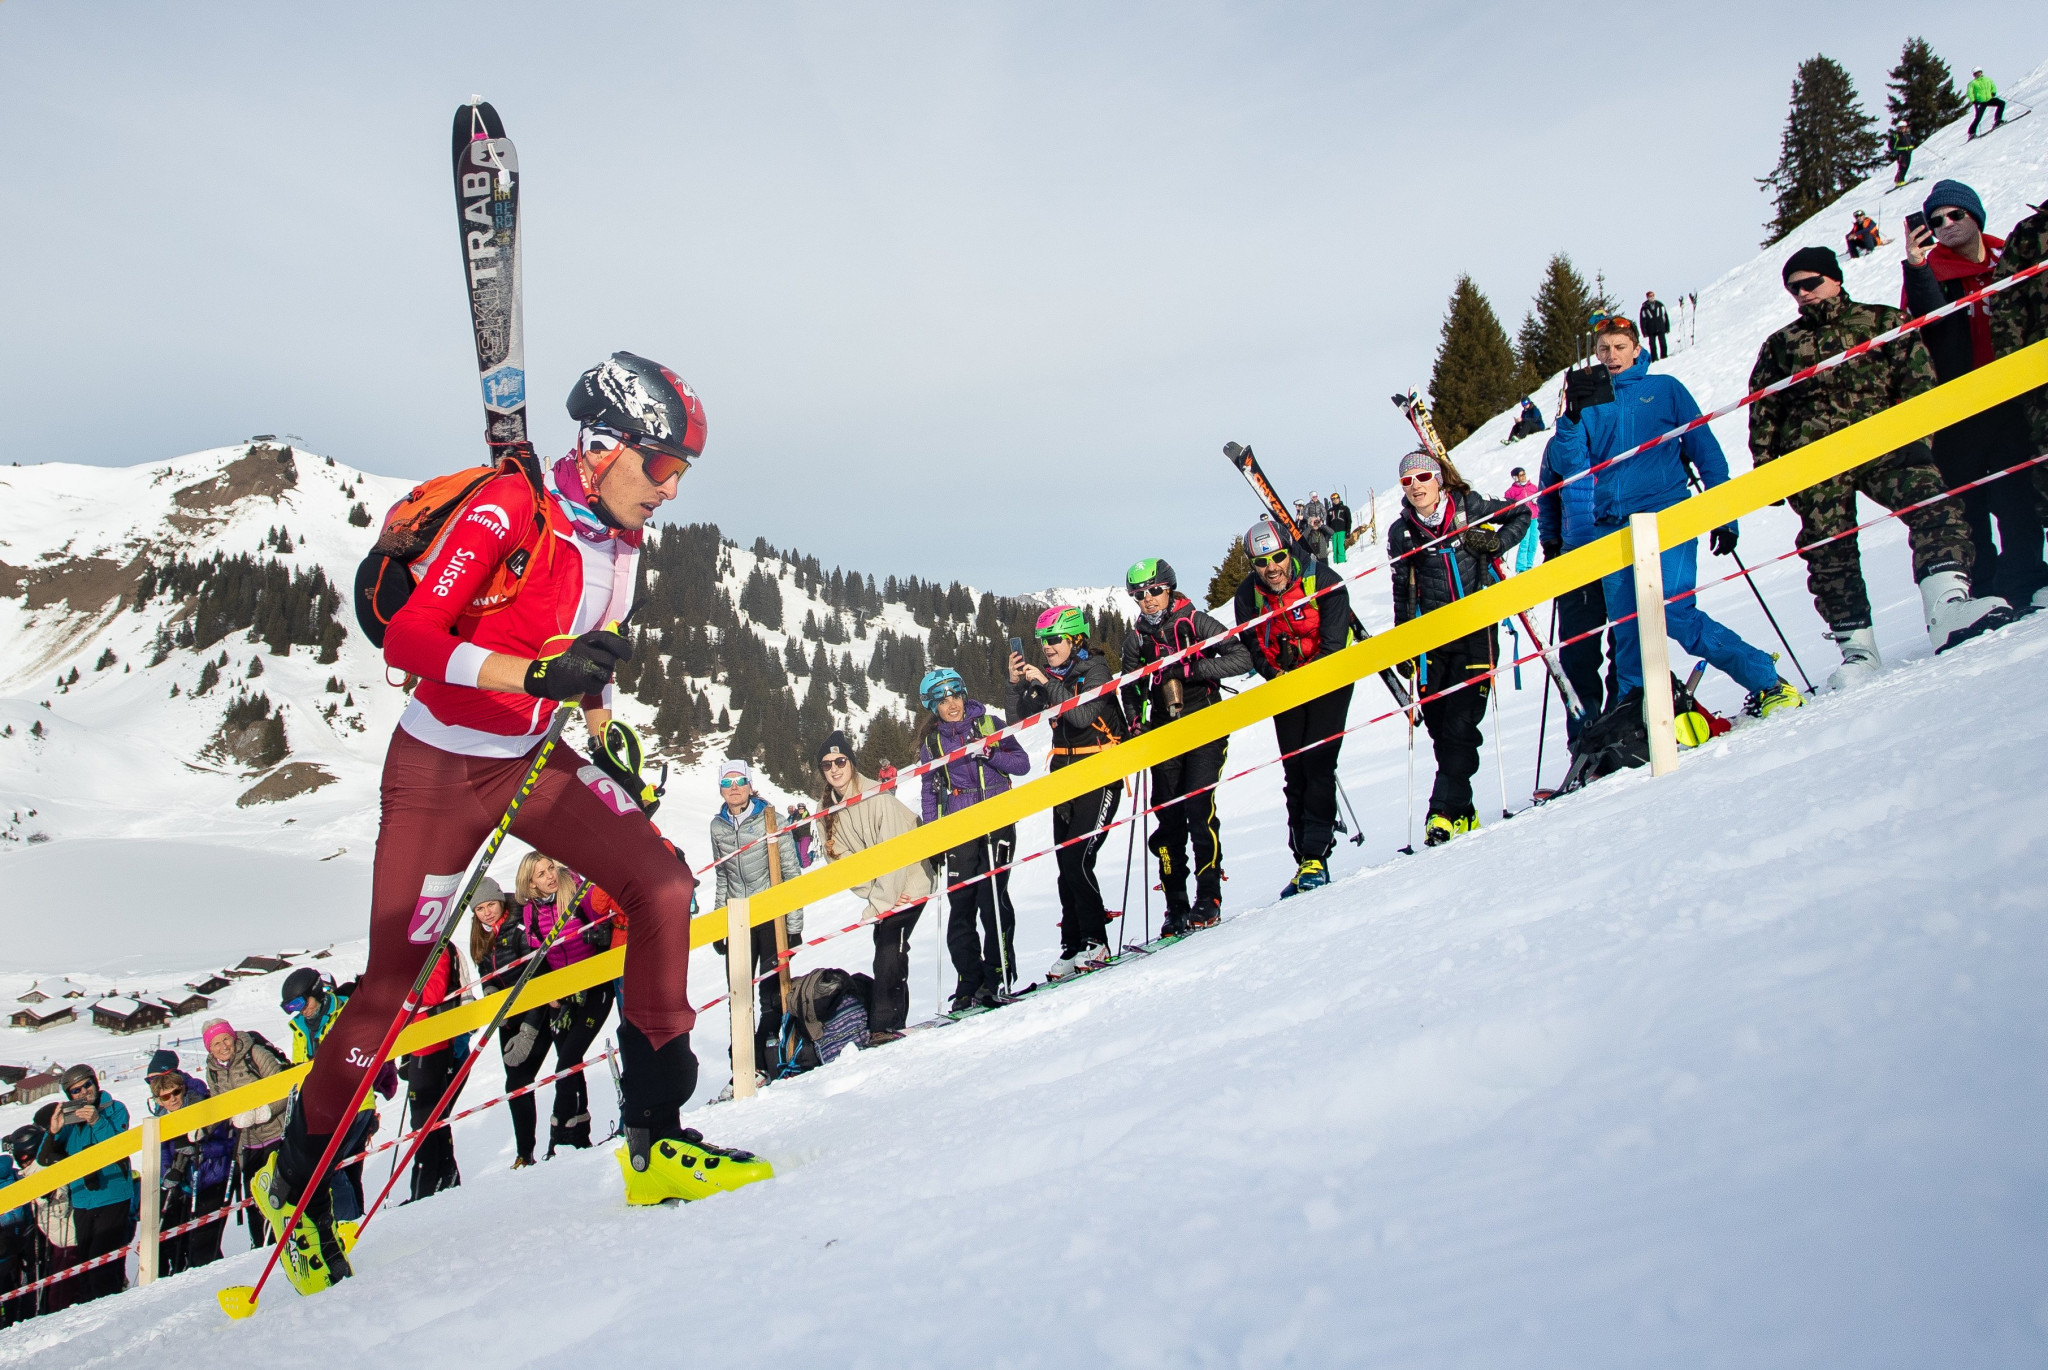 Ski moutaineering competition resumed at the Villars Winter Park ©Lausanne 2020